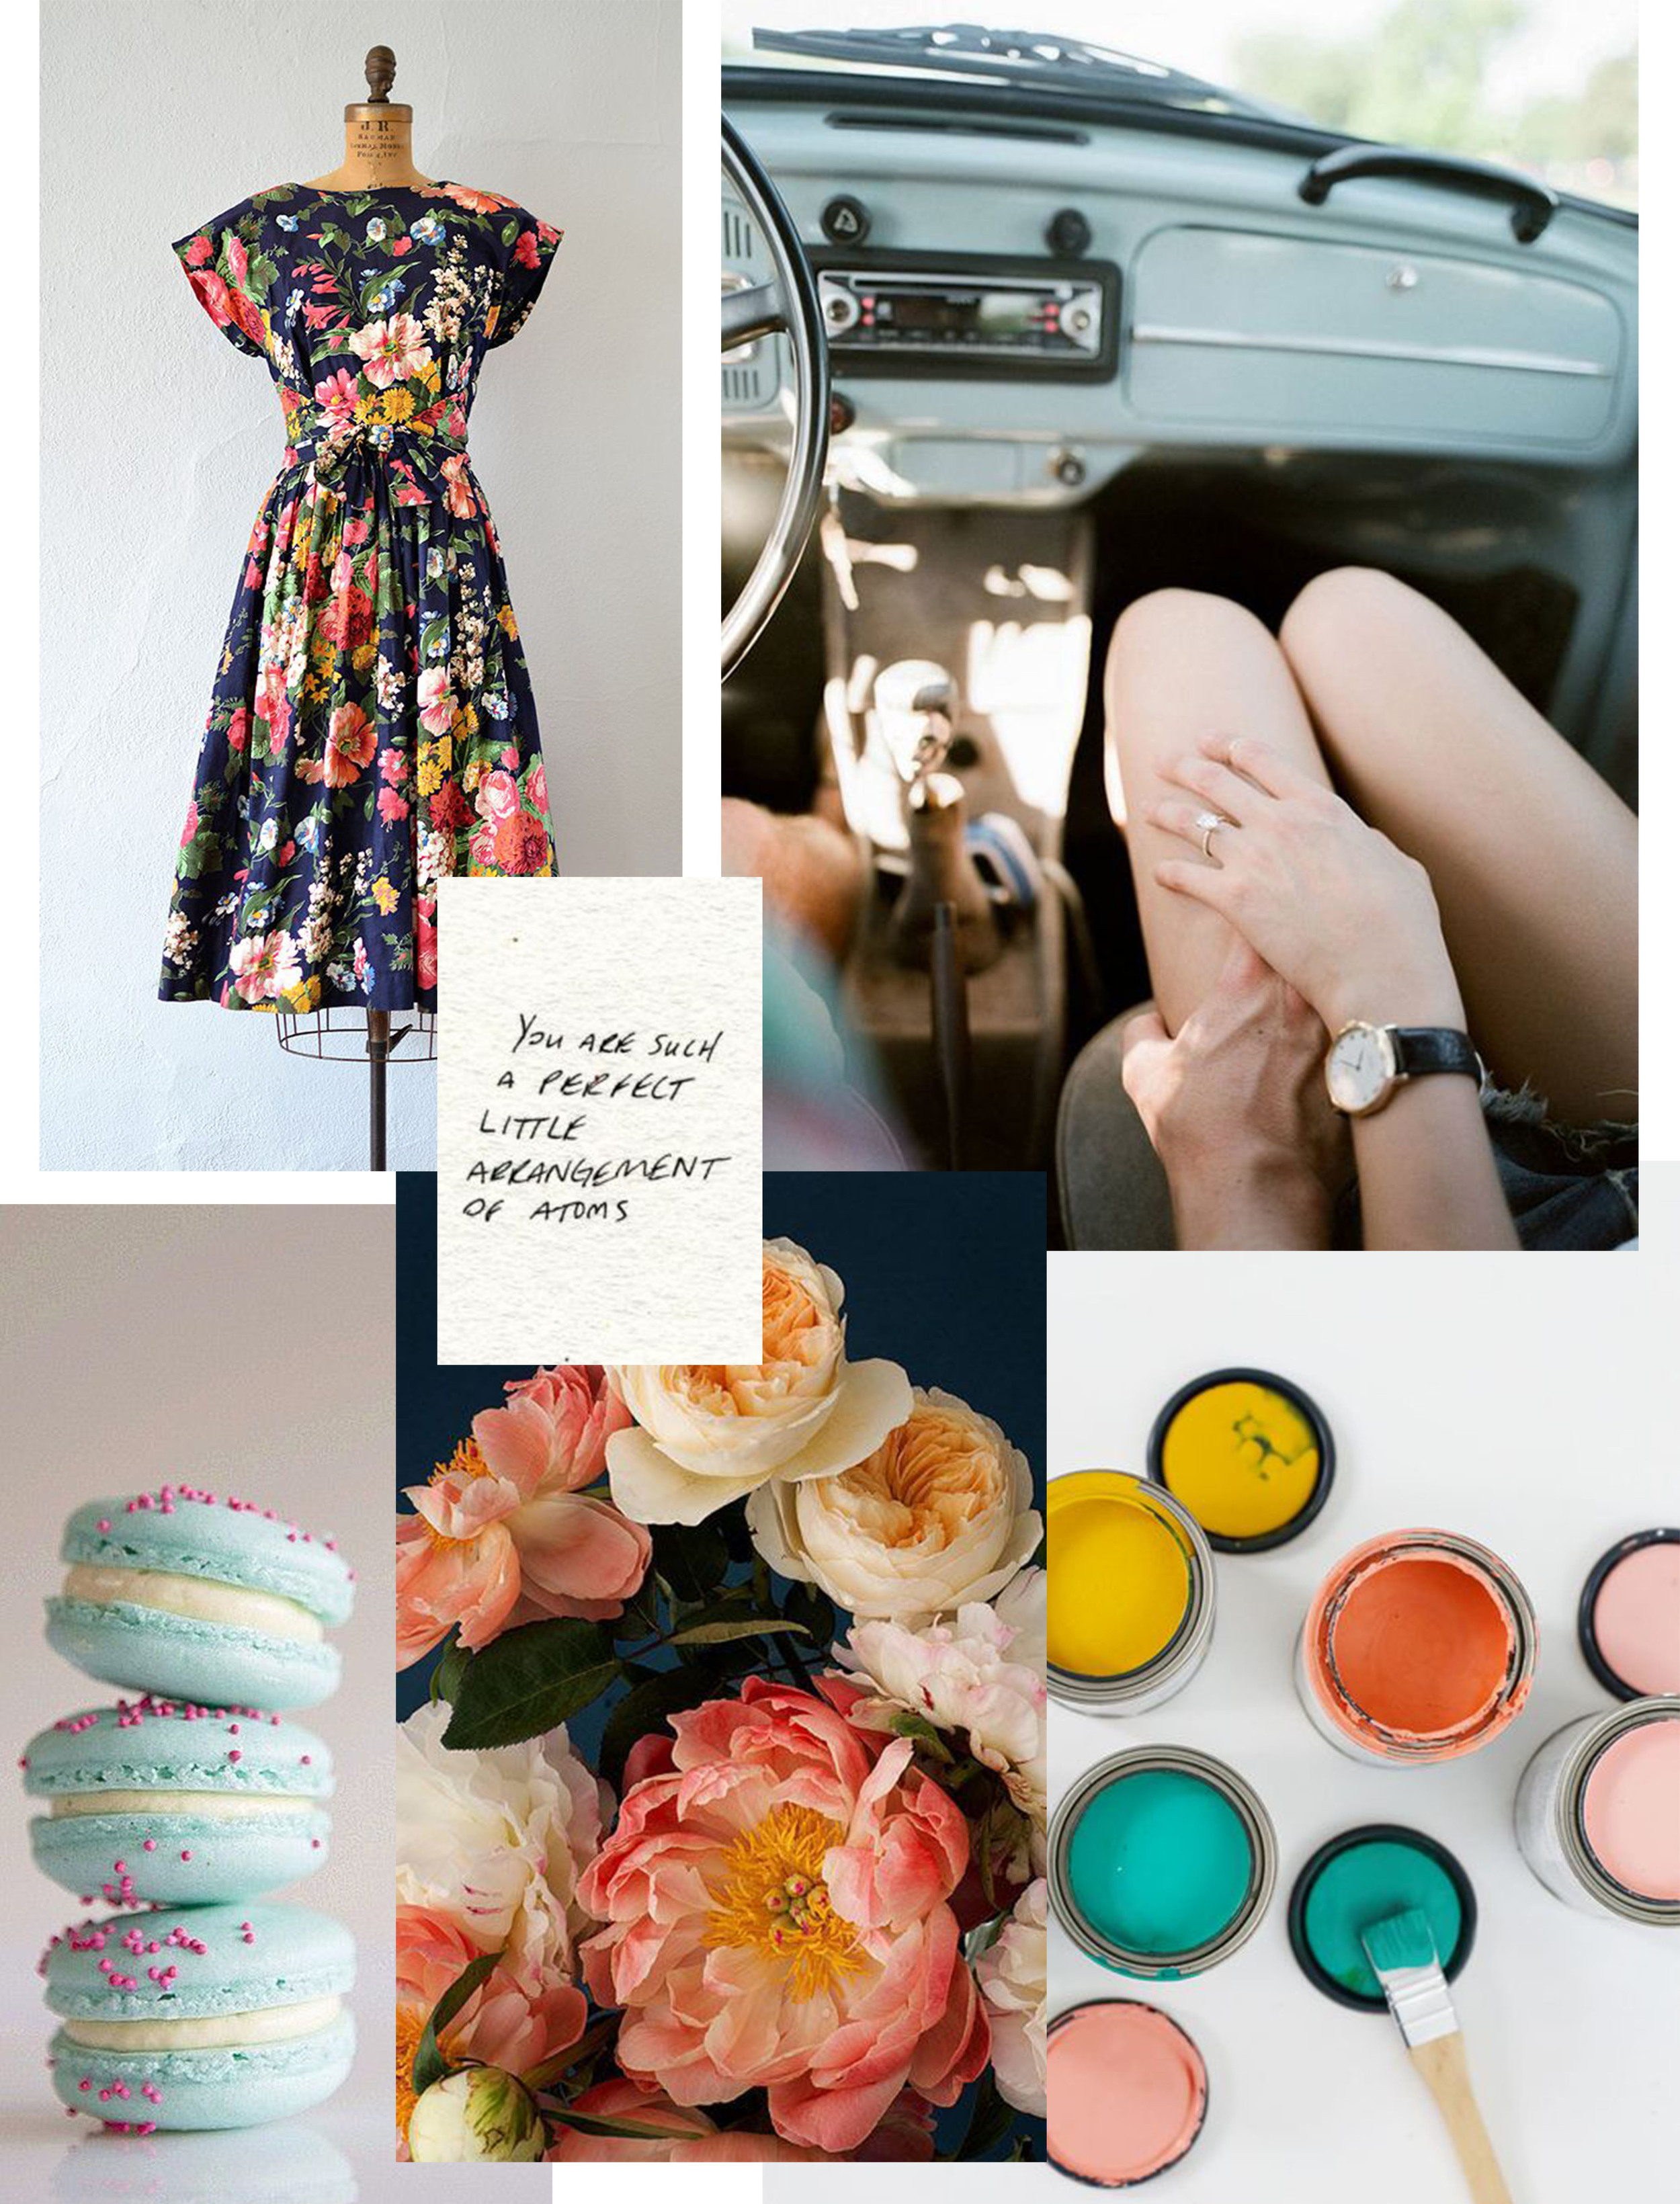 all images are from  pinterest